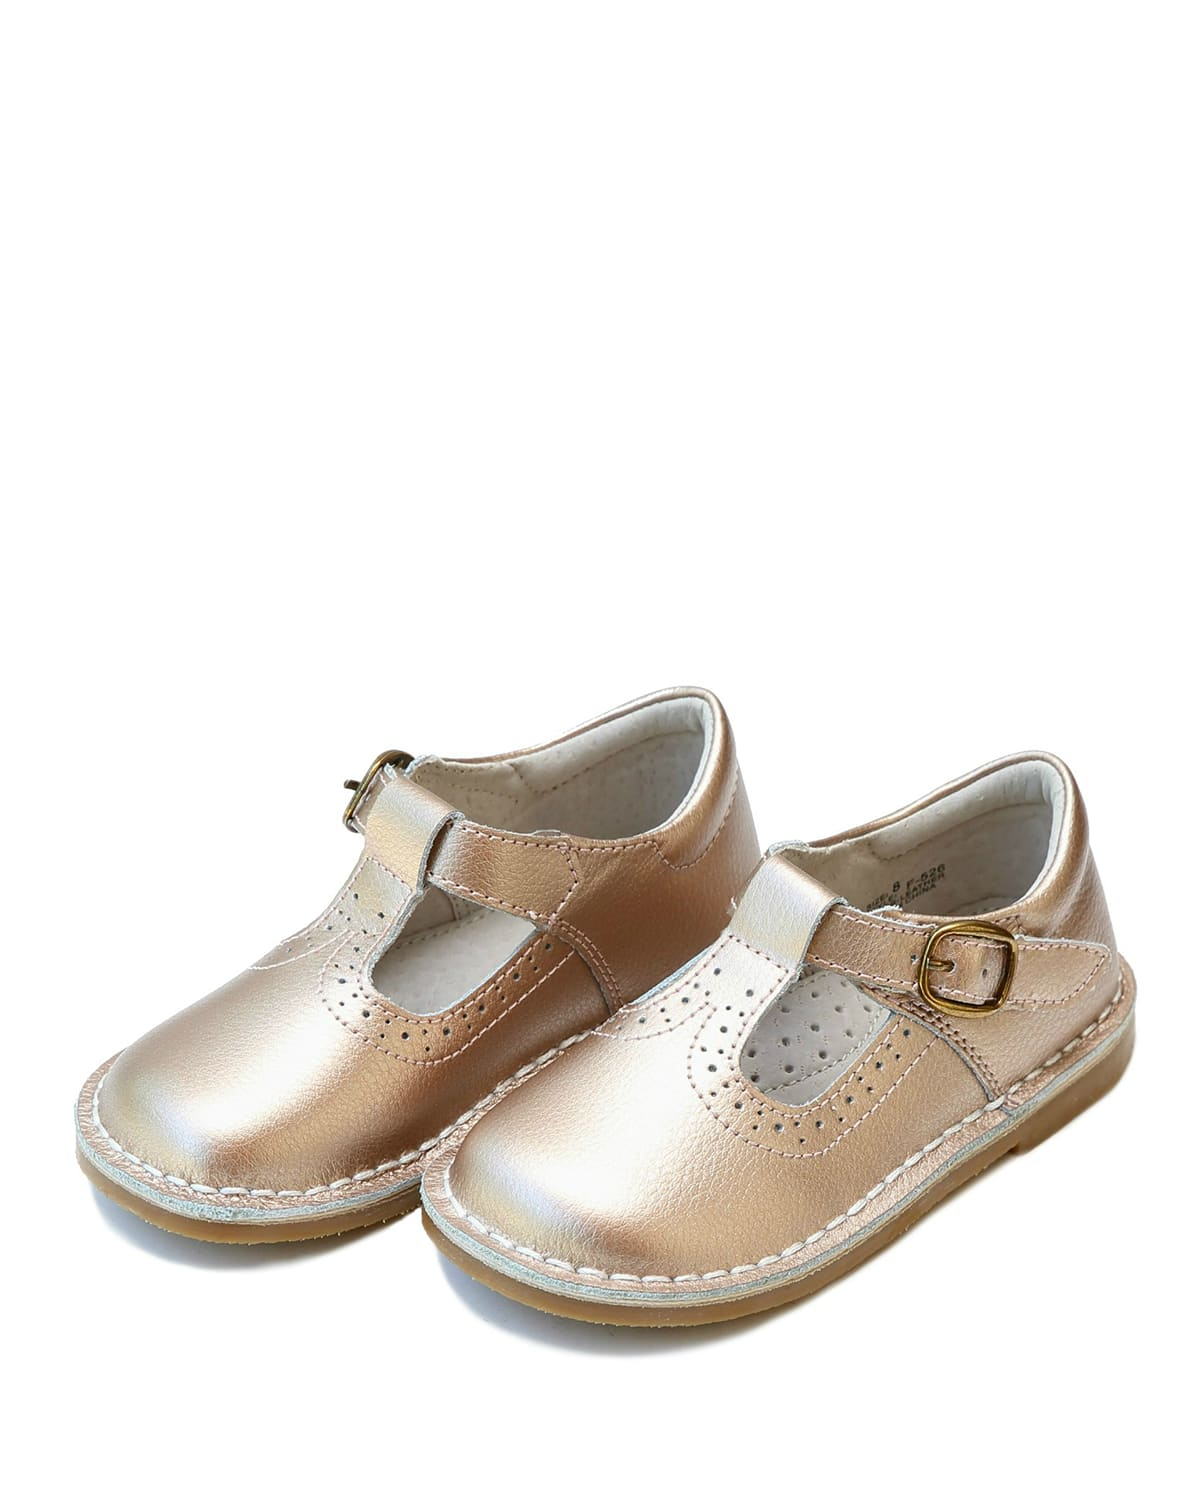 Girl's Frances Metallic T-Strap Mary Jane Shoes